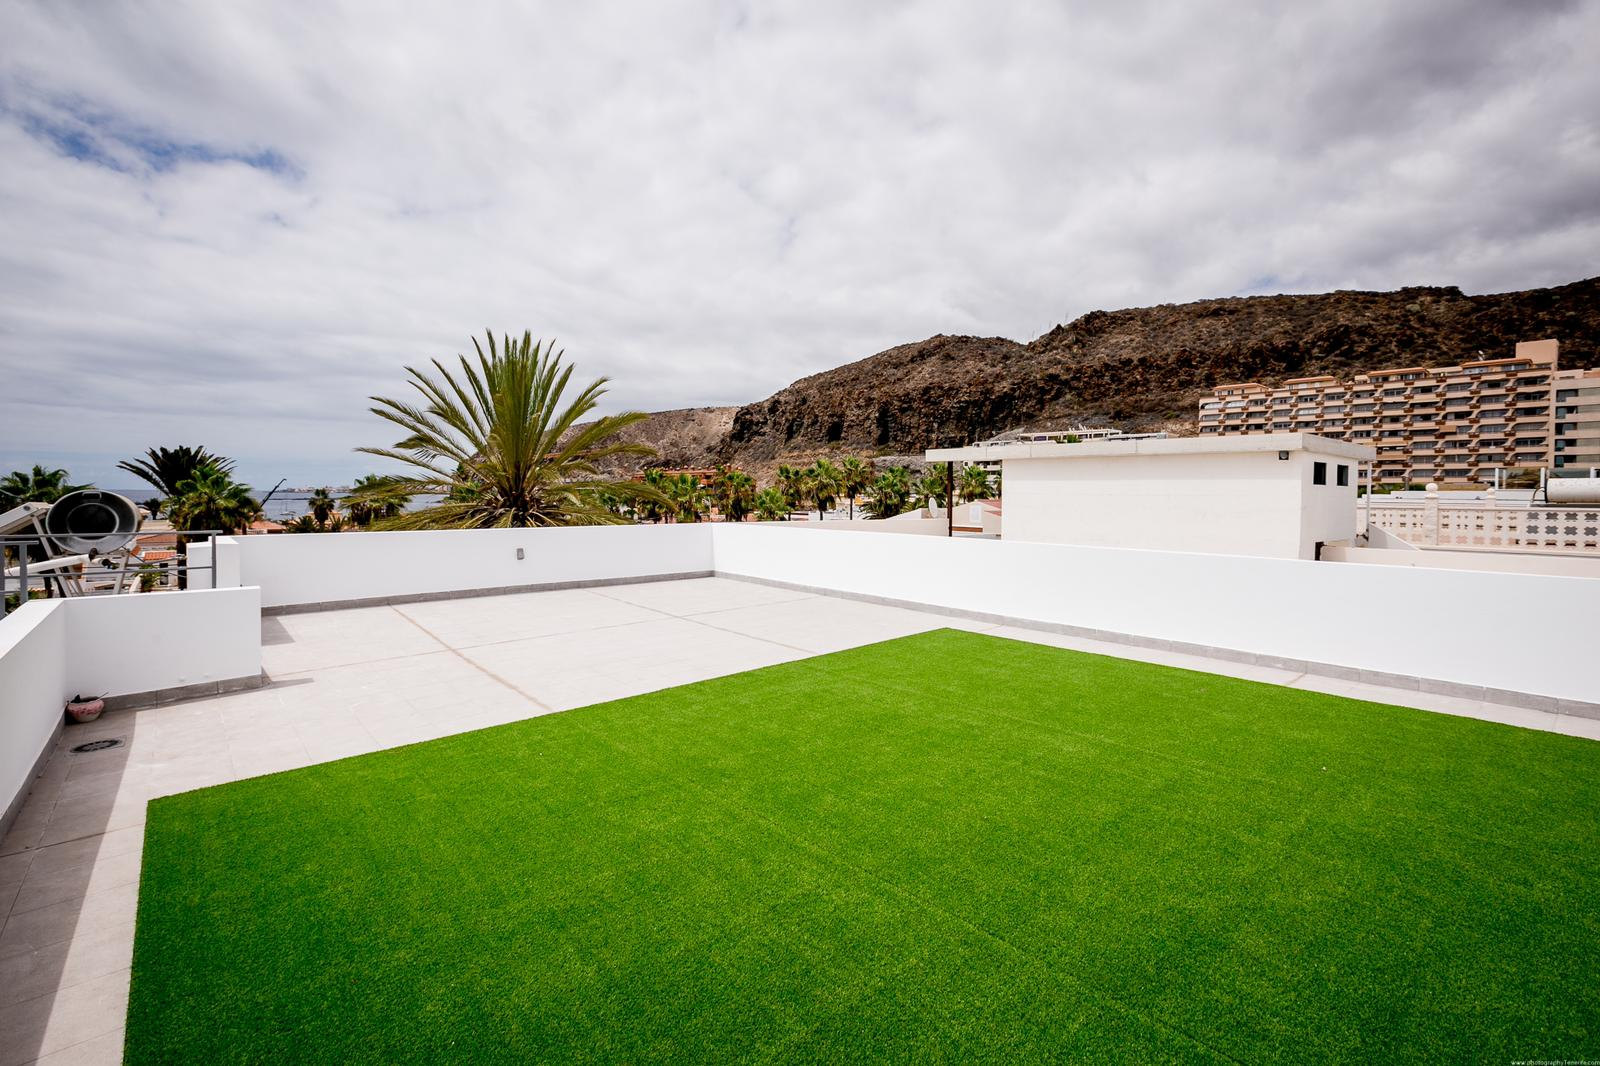 Properties for Sale in Tenerife, Canary Islands, Spain | SylkWayStar Real Estate. 3 bedroom villa Palm Mar. Image-25047